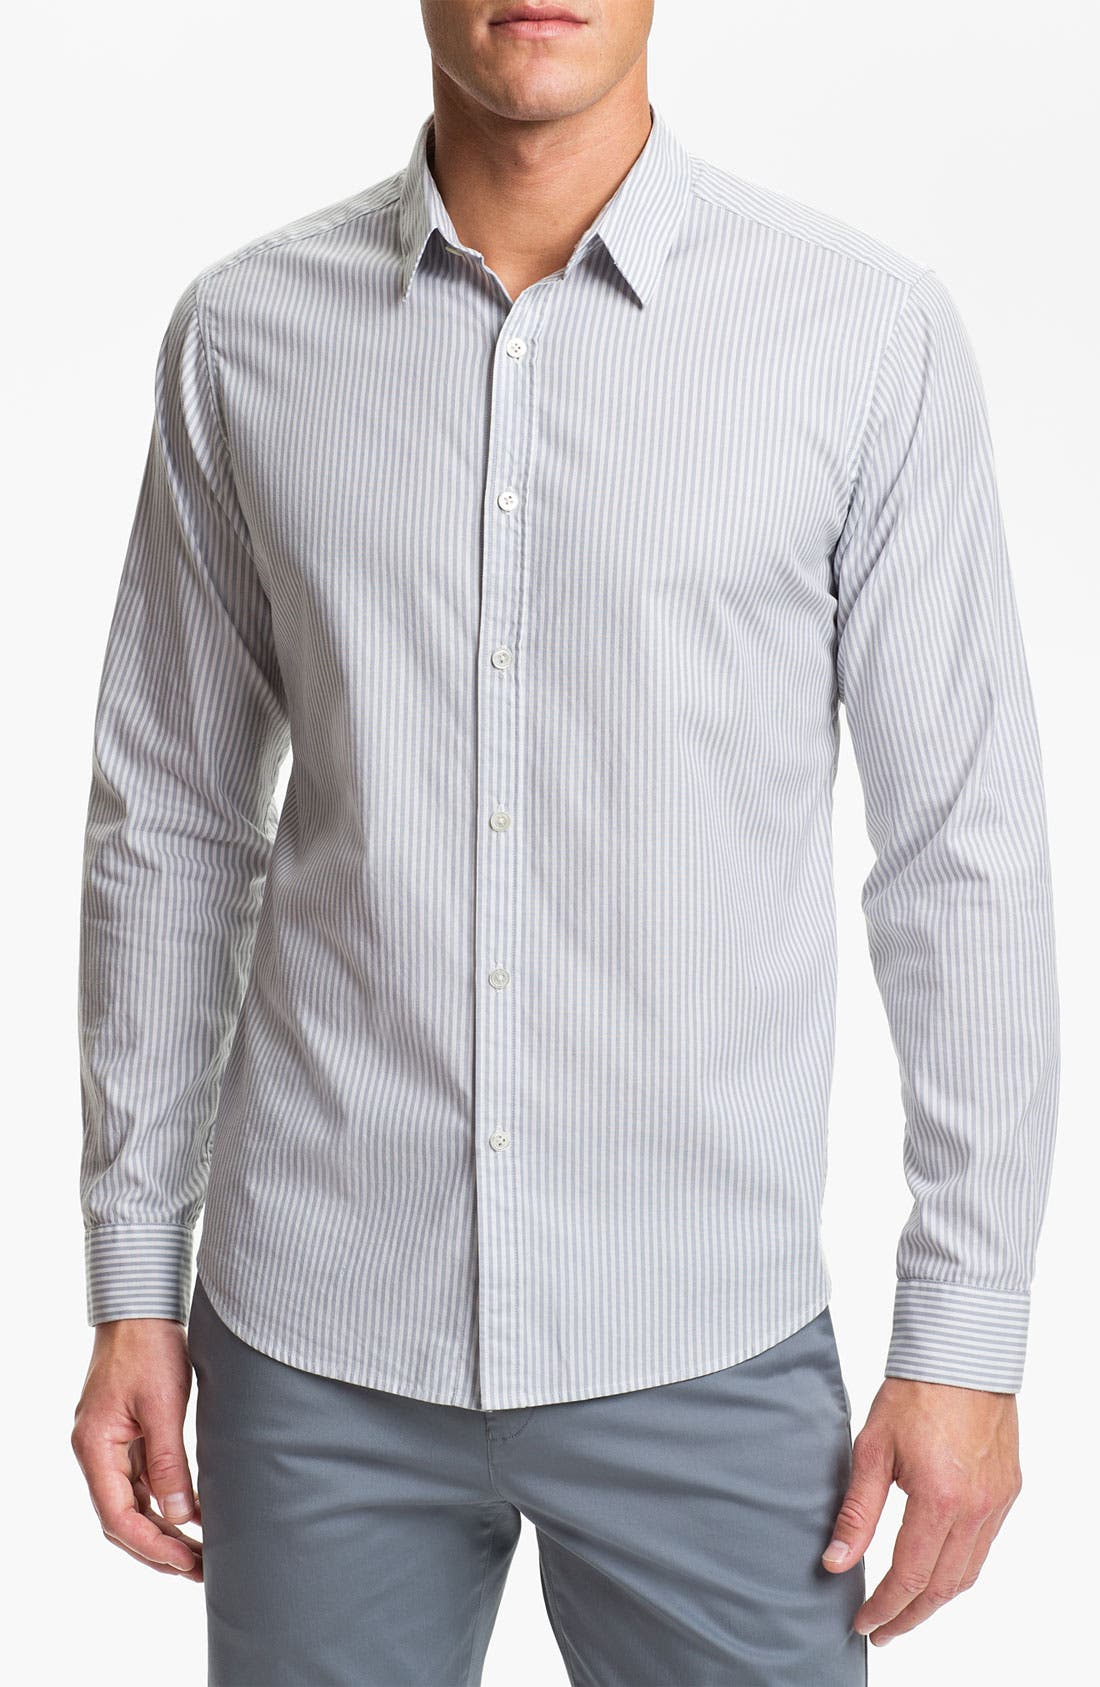 Main Image - Theory 'Zack' Cotton Stretch Shirt